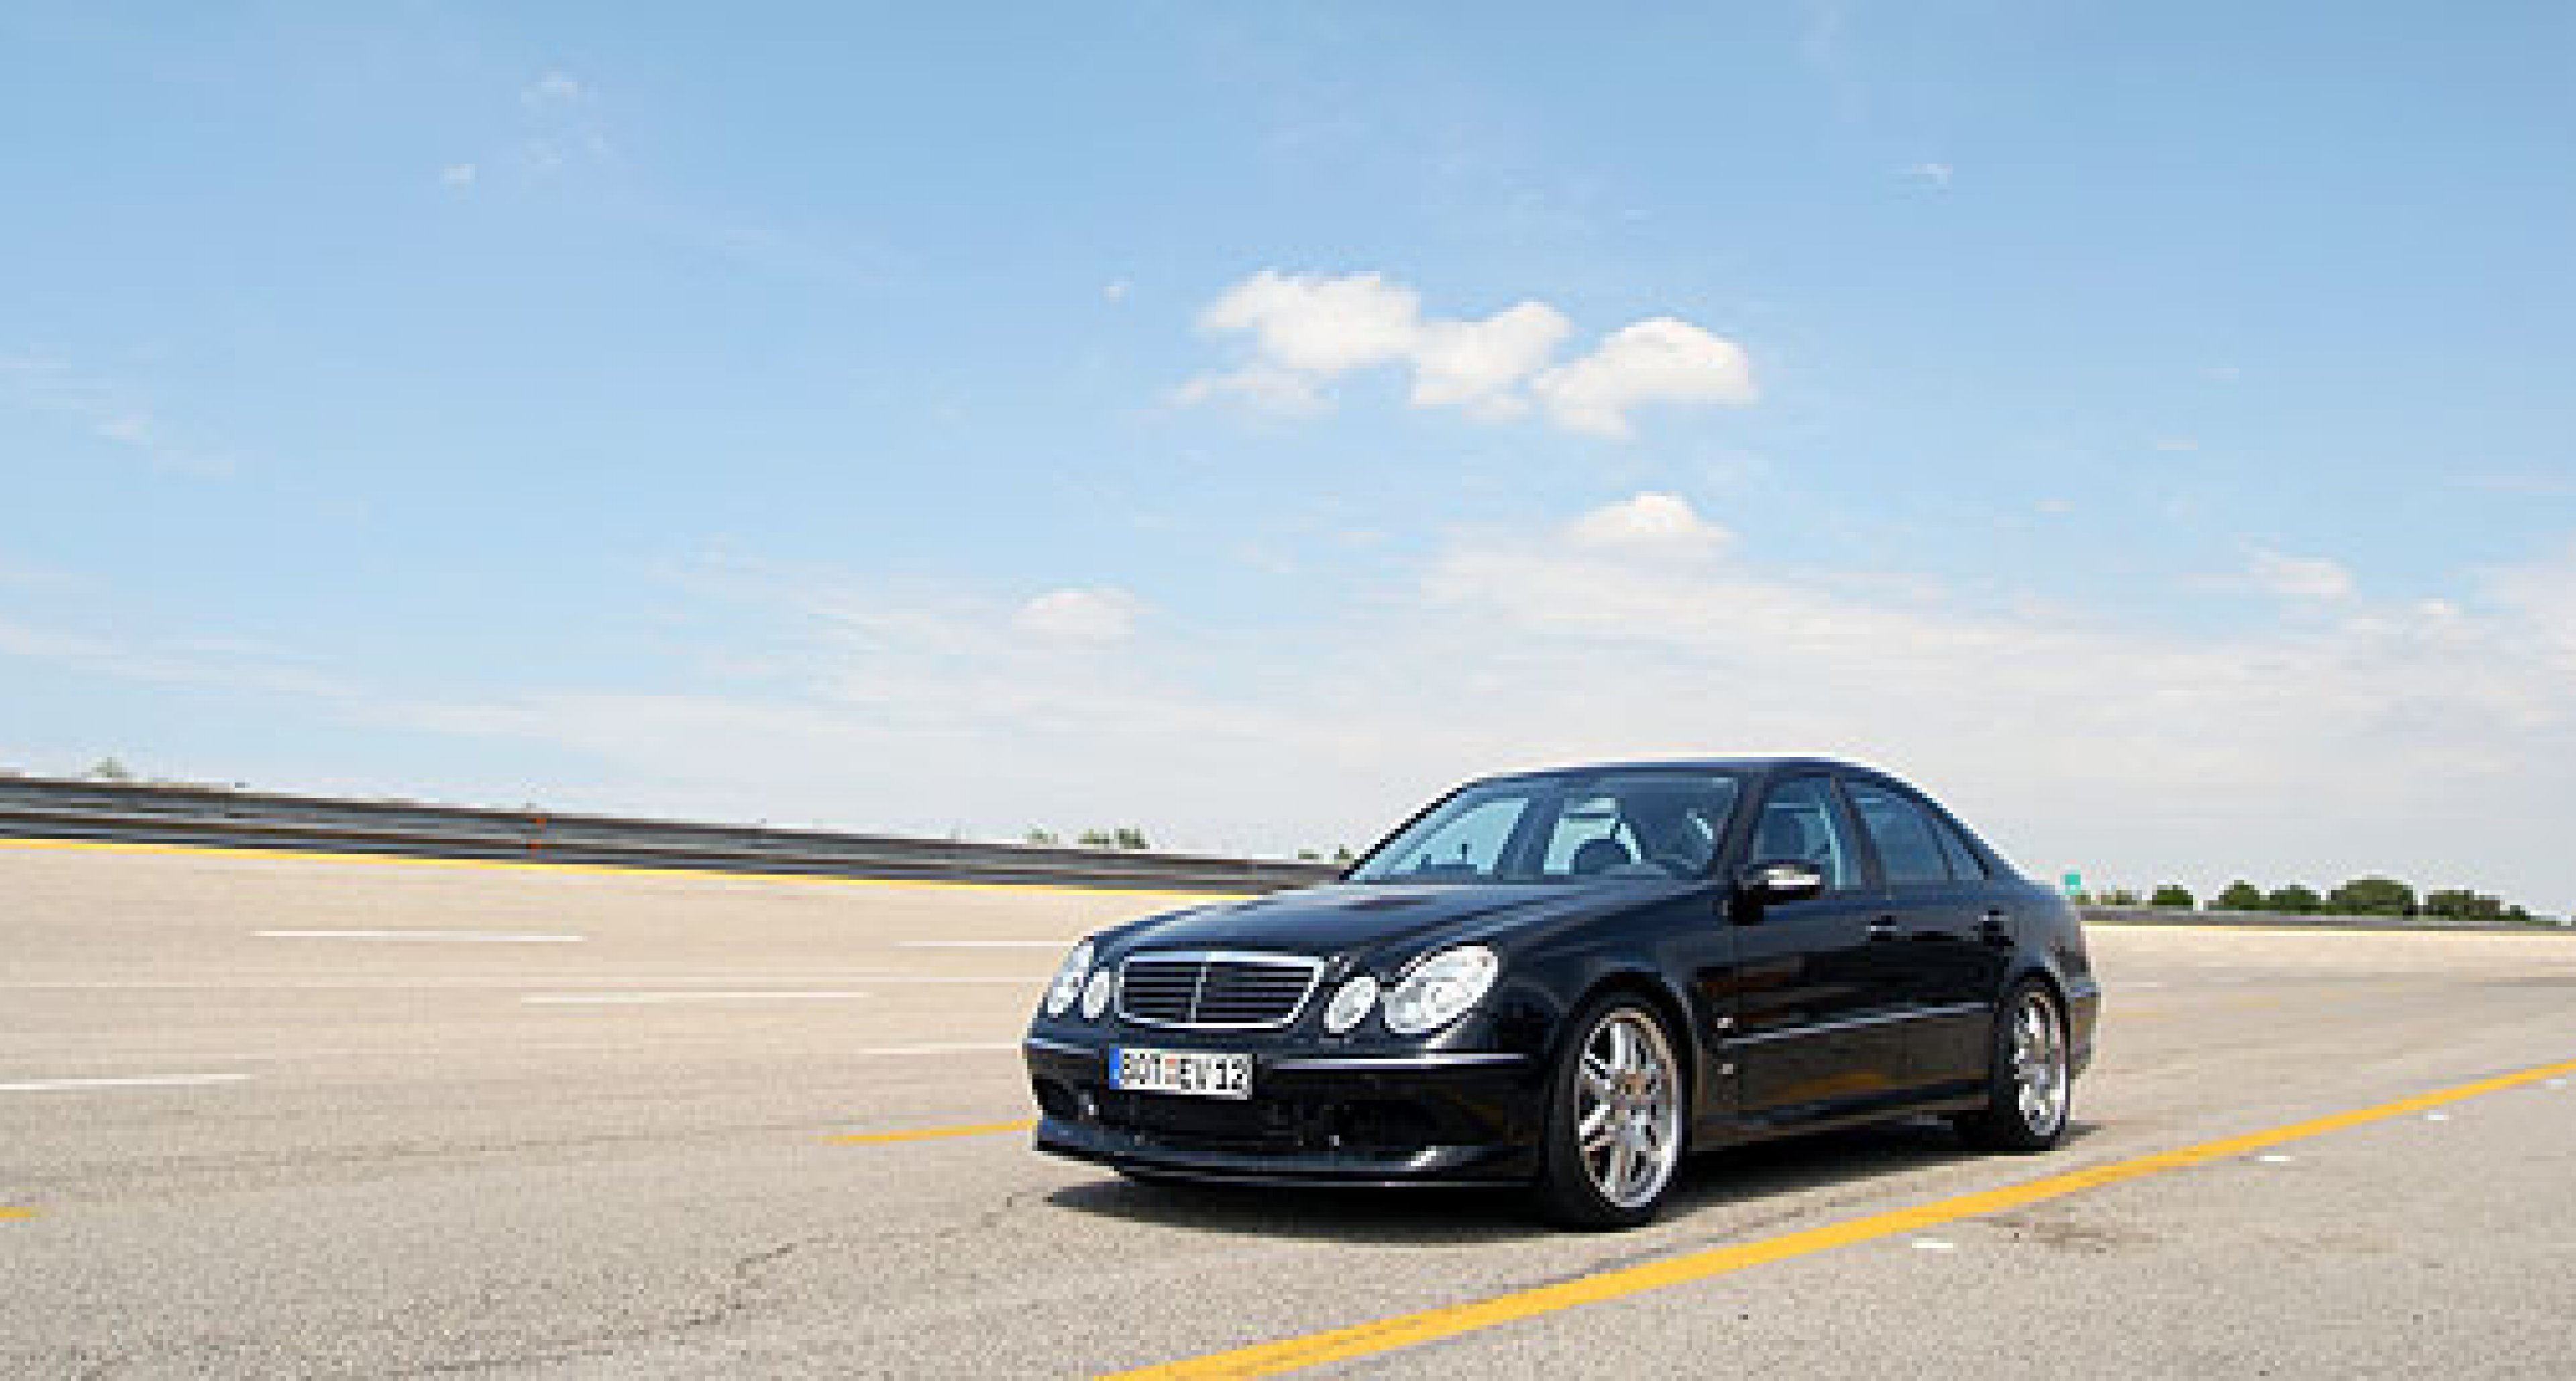 350.2 km/h: The Fastest Saloon In The World